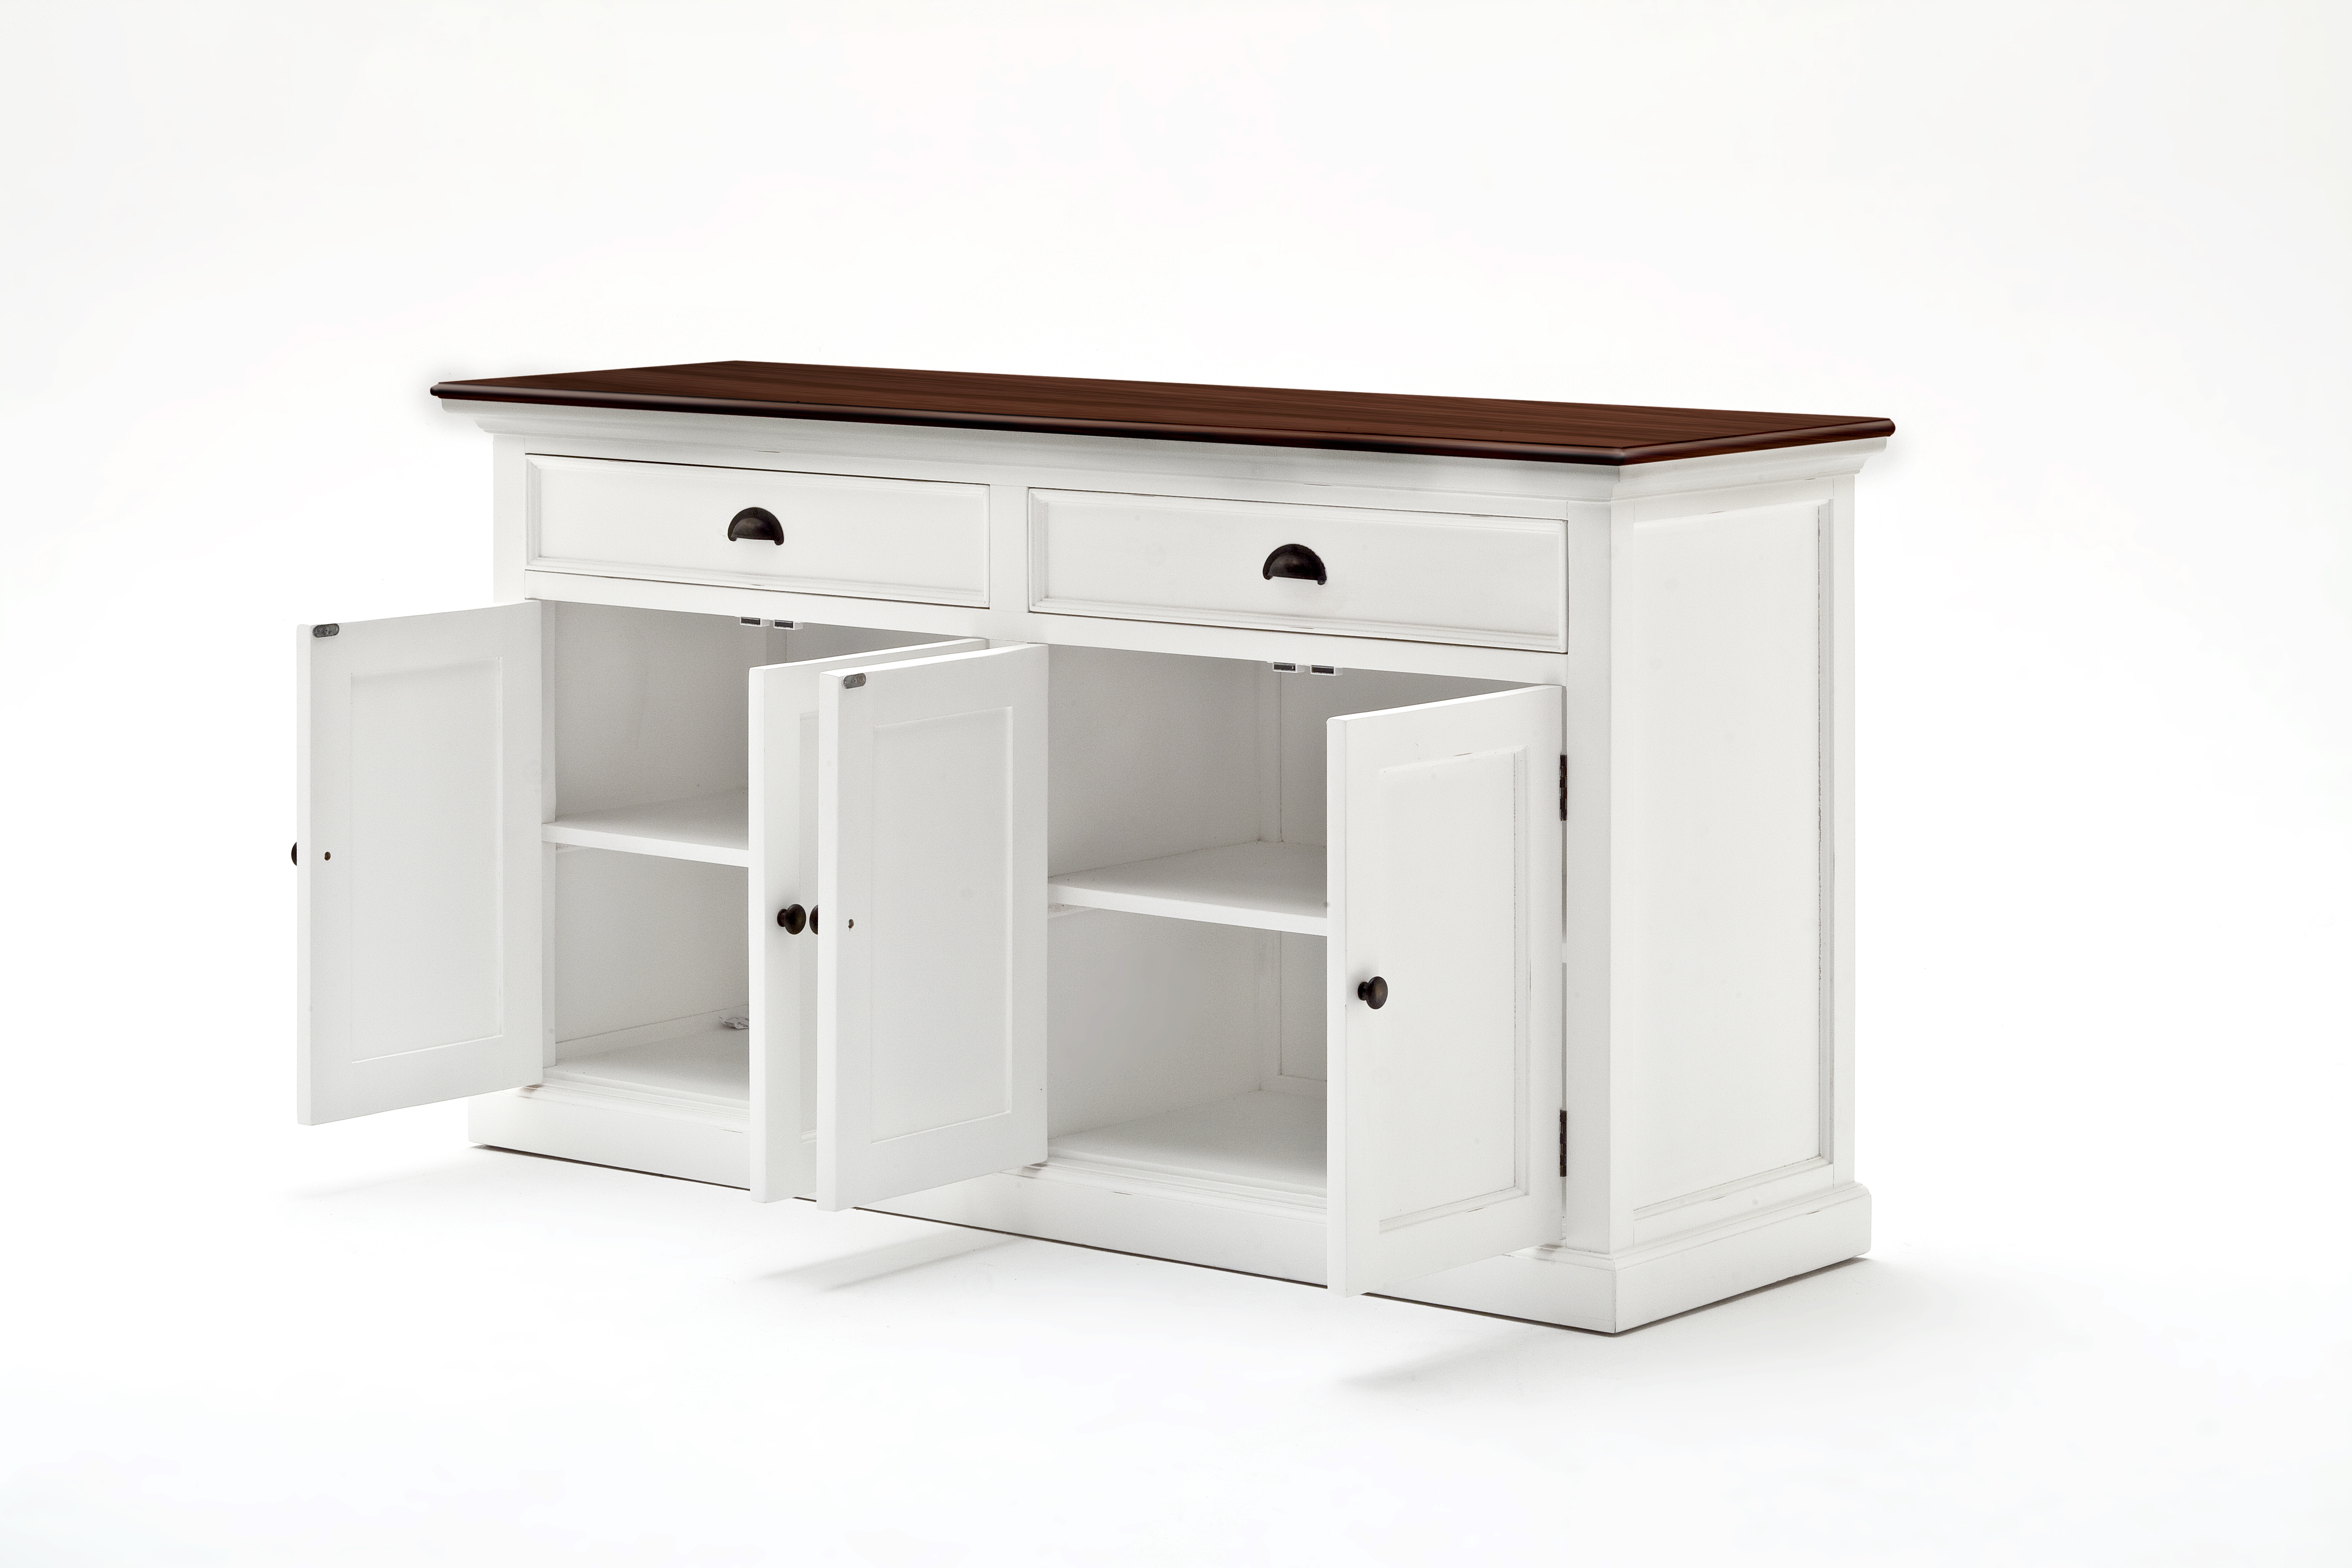 Details About Nova Solo Halifax Accent Solid Wood White & Mahogany Top Buffet With 2 Drawers For Grey Wooden Accent Buffets (View 15 of 20)